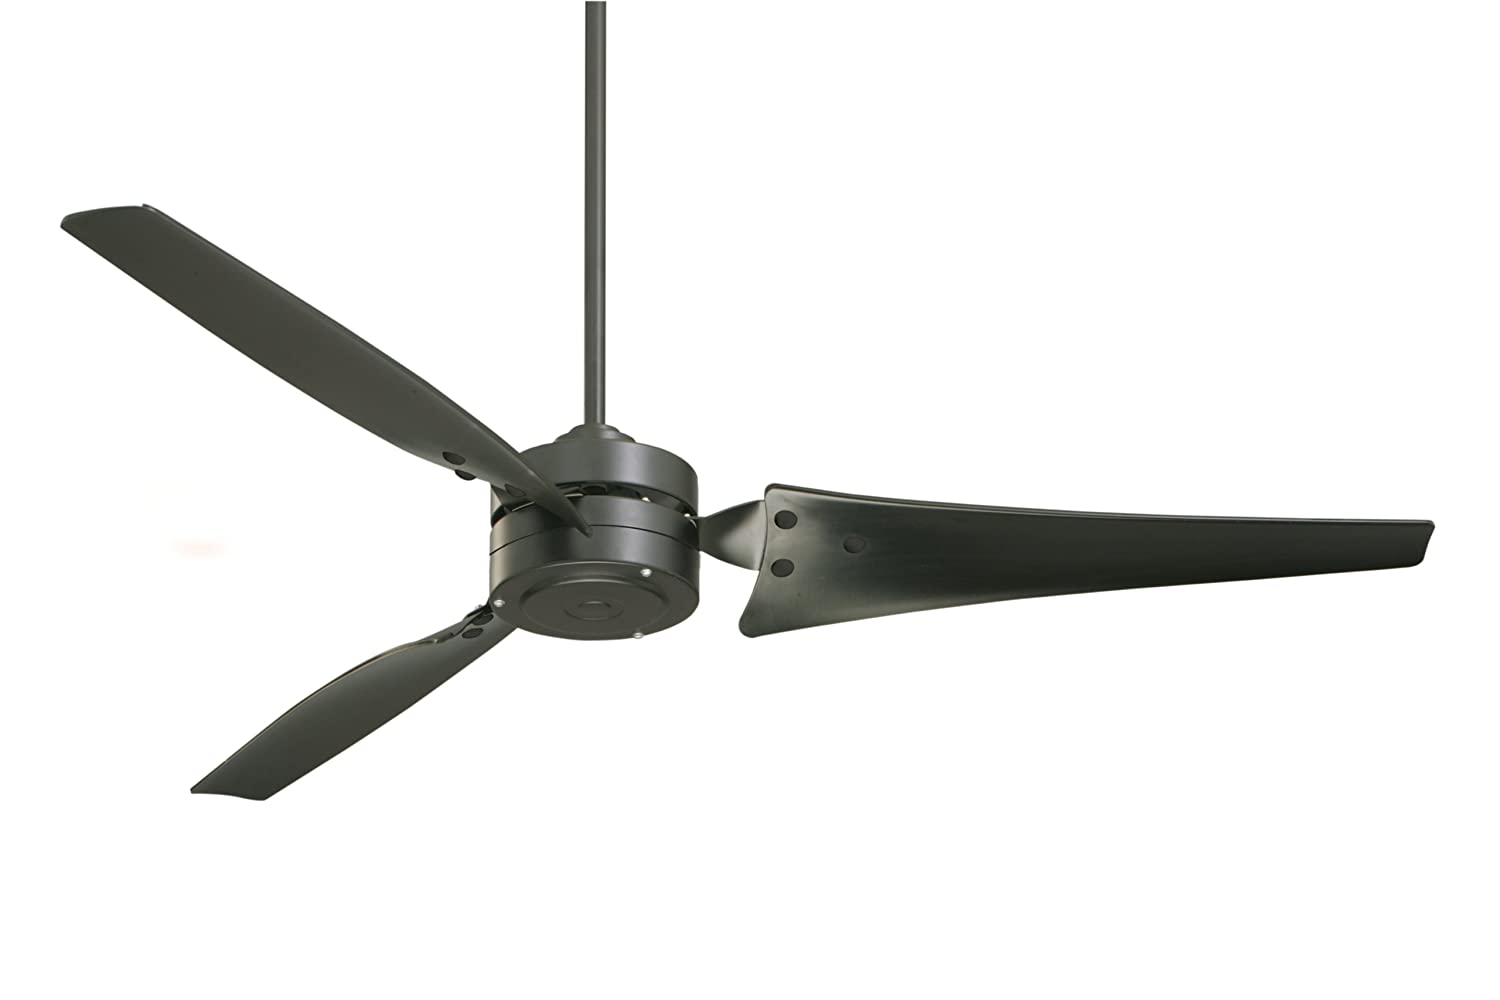 emerson ceiling fan white, emersonfans, emerson fans, emerson ceiling fans, emerson lighting, emerson electric fan, emerson k55 ceiling fan